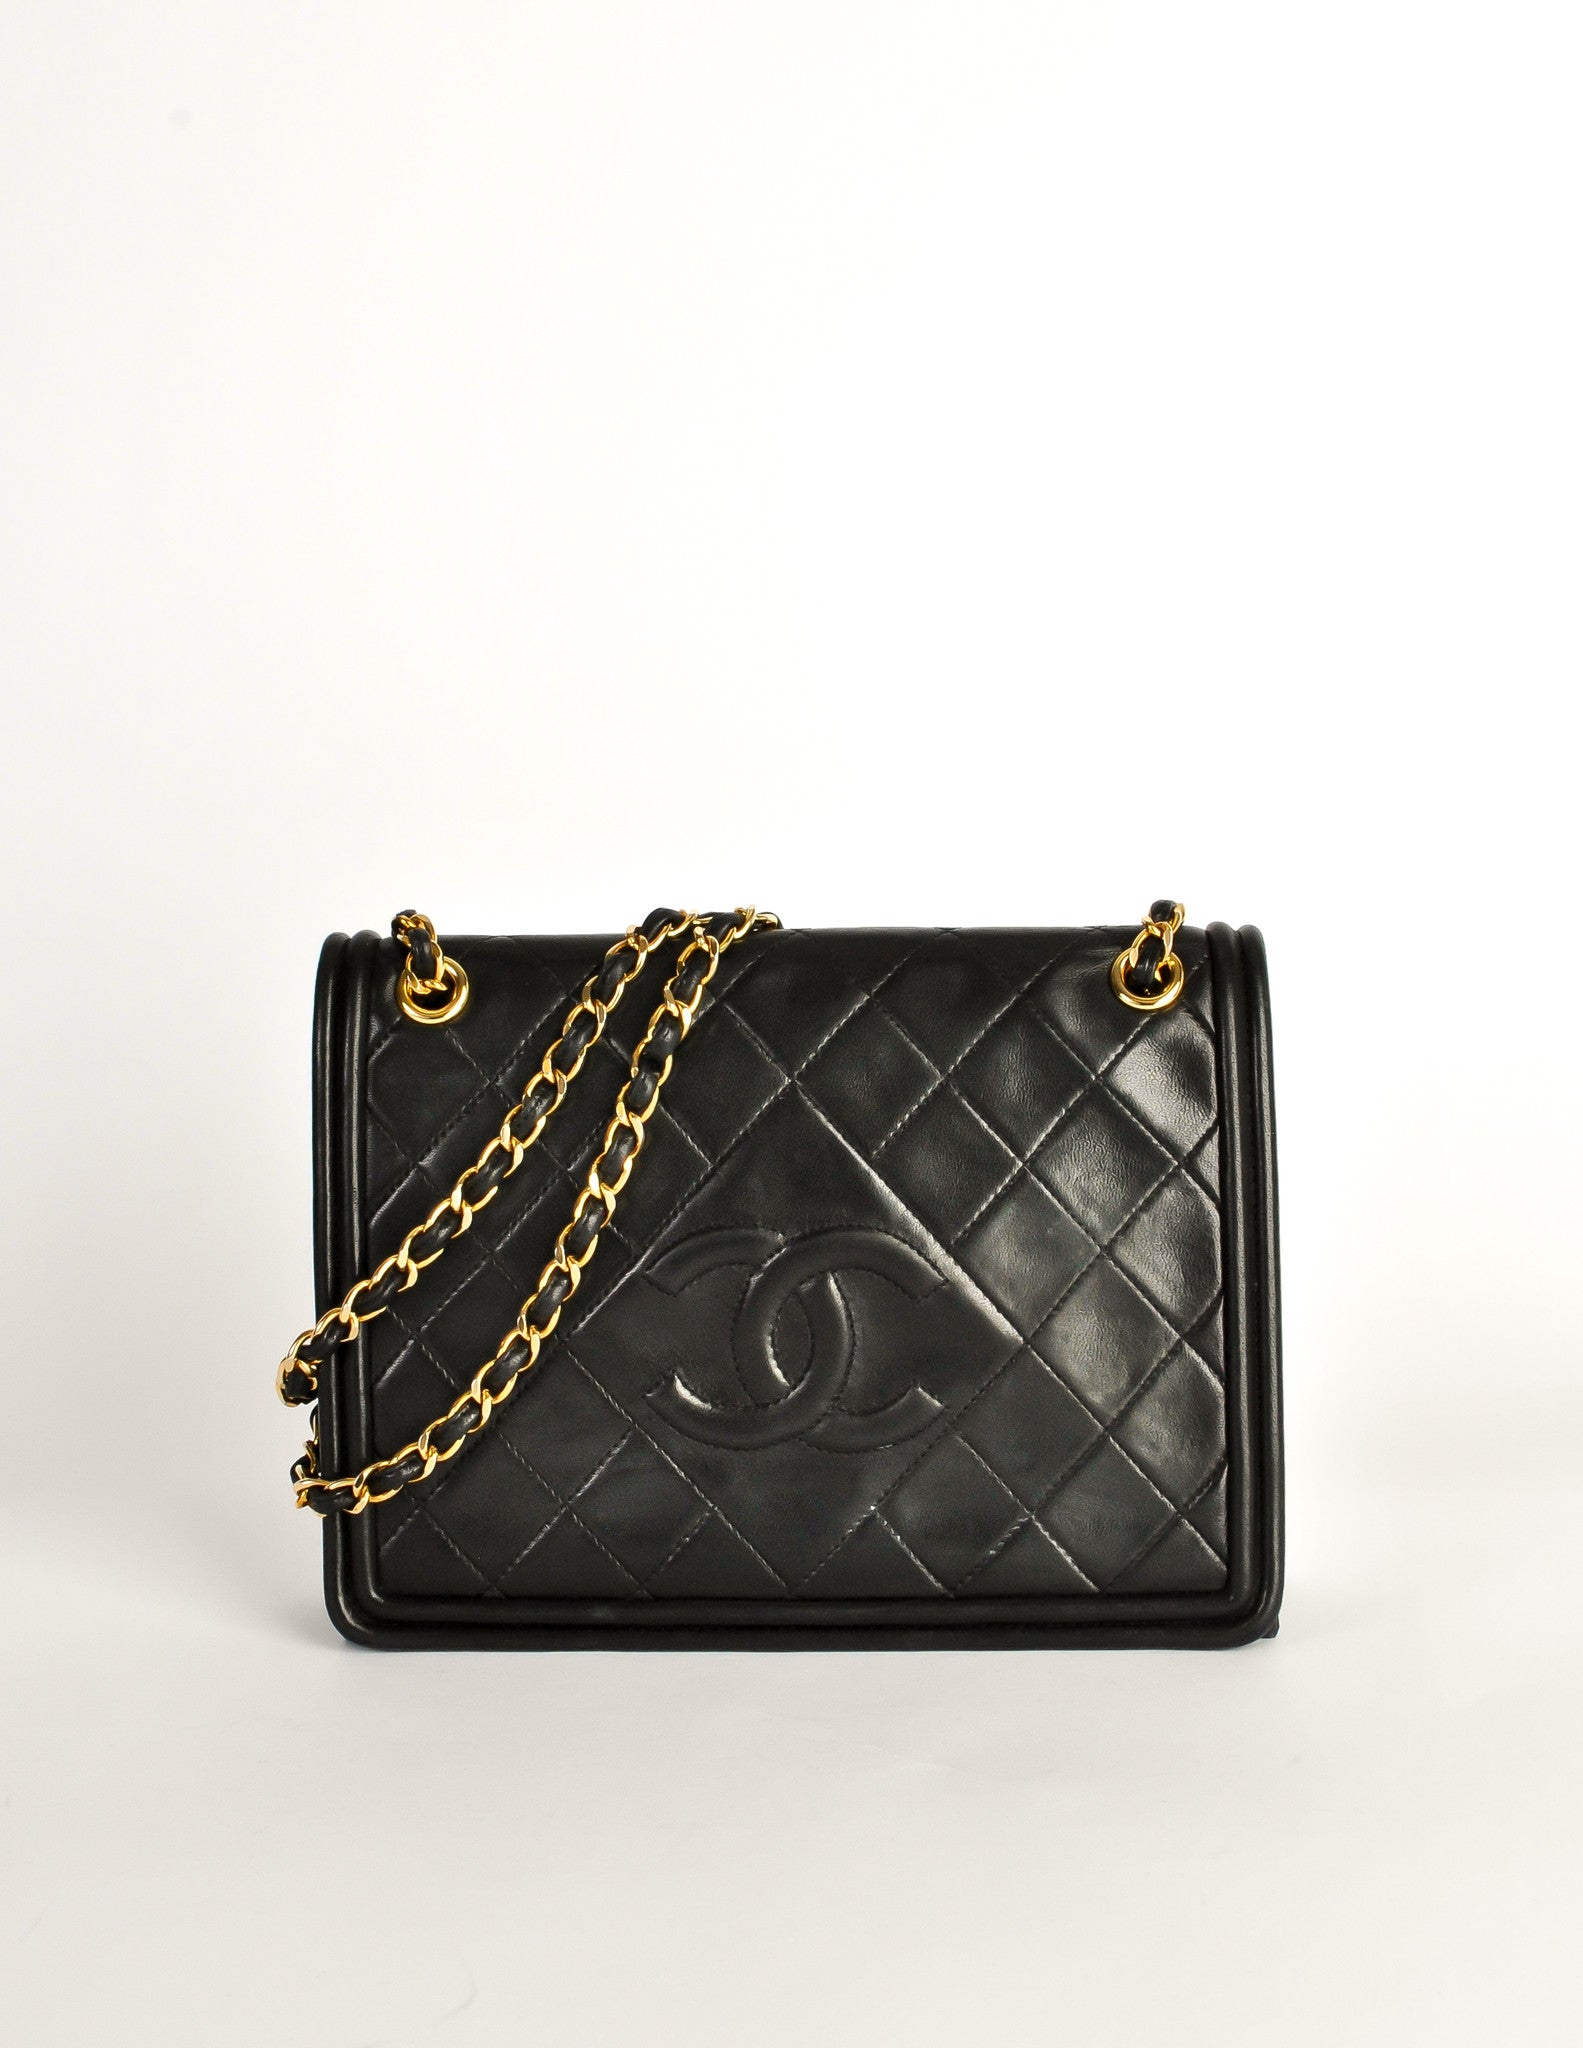 2626288281e206 Chanel Vintage Black Lambskin Leather Quilted CC Logo Bag - Amarcord Vintage  Fashion - 2